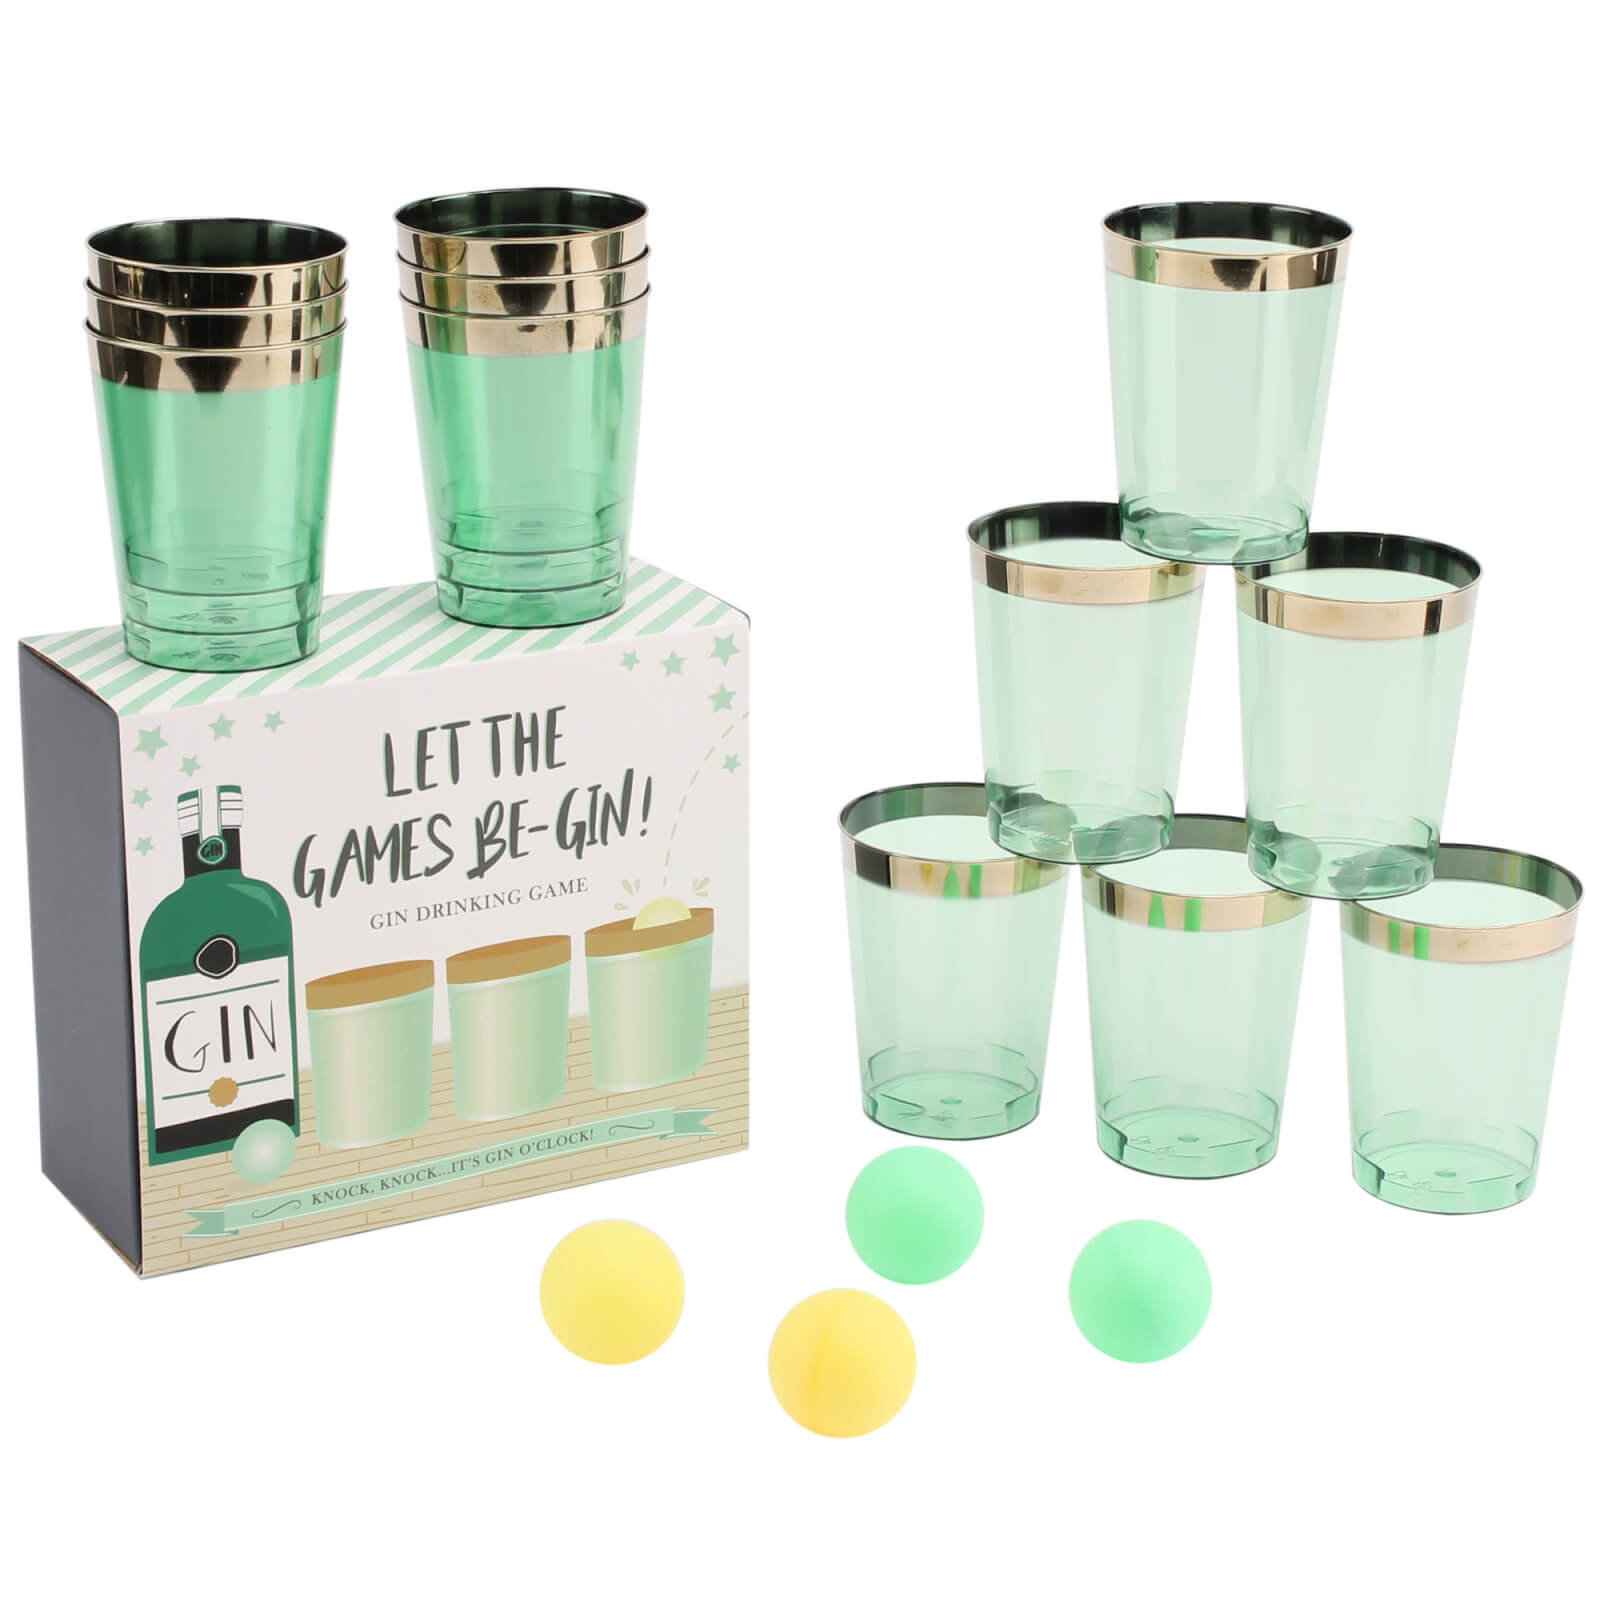 Gin Pong Drinking Game